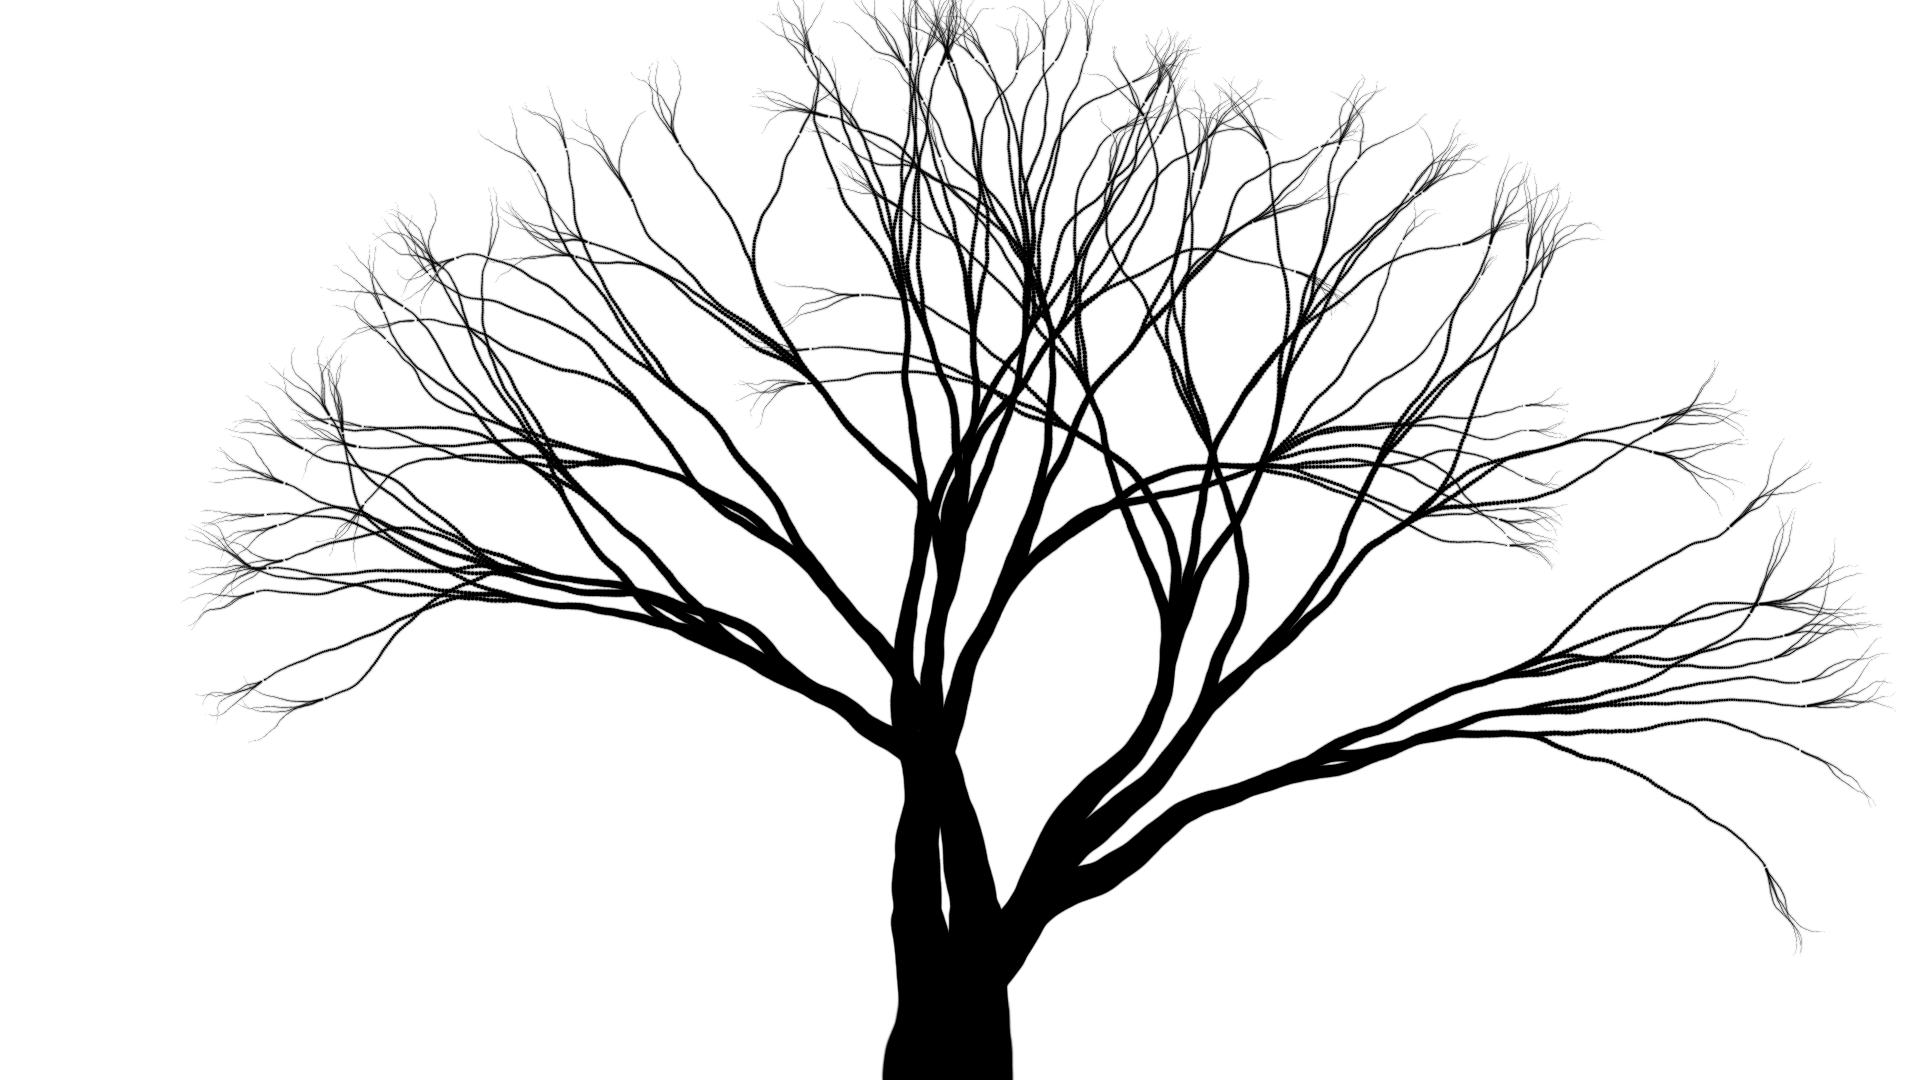 A tree picture